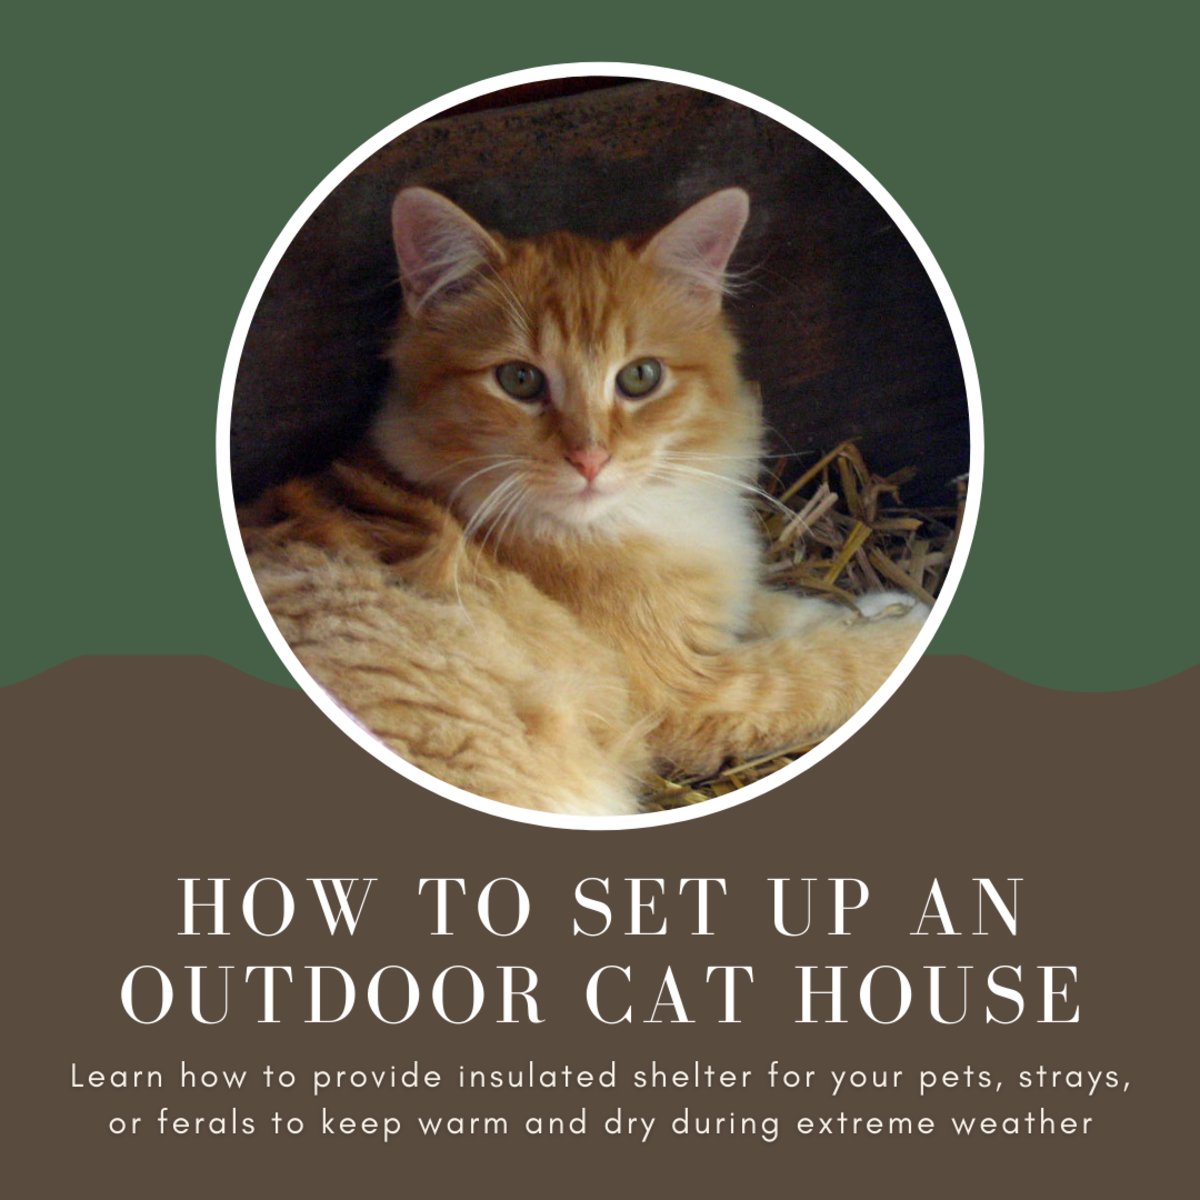 How to Set Up an Outdoor Cat House for Pets, Strays, and Ferals